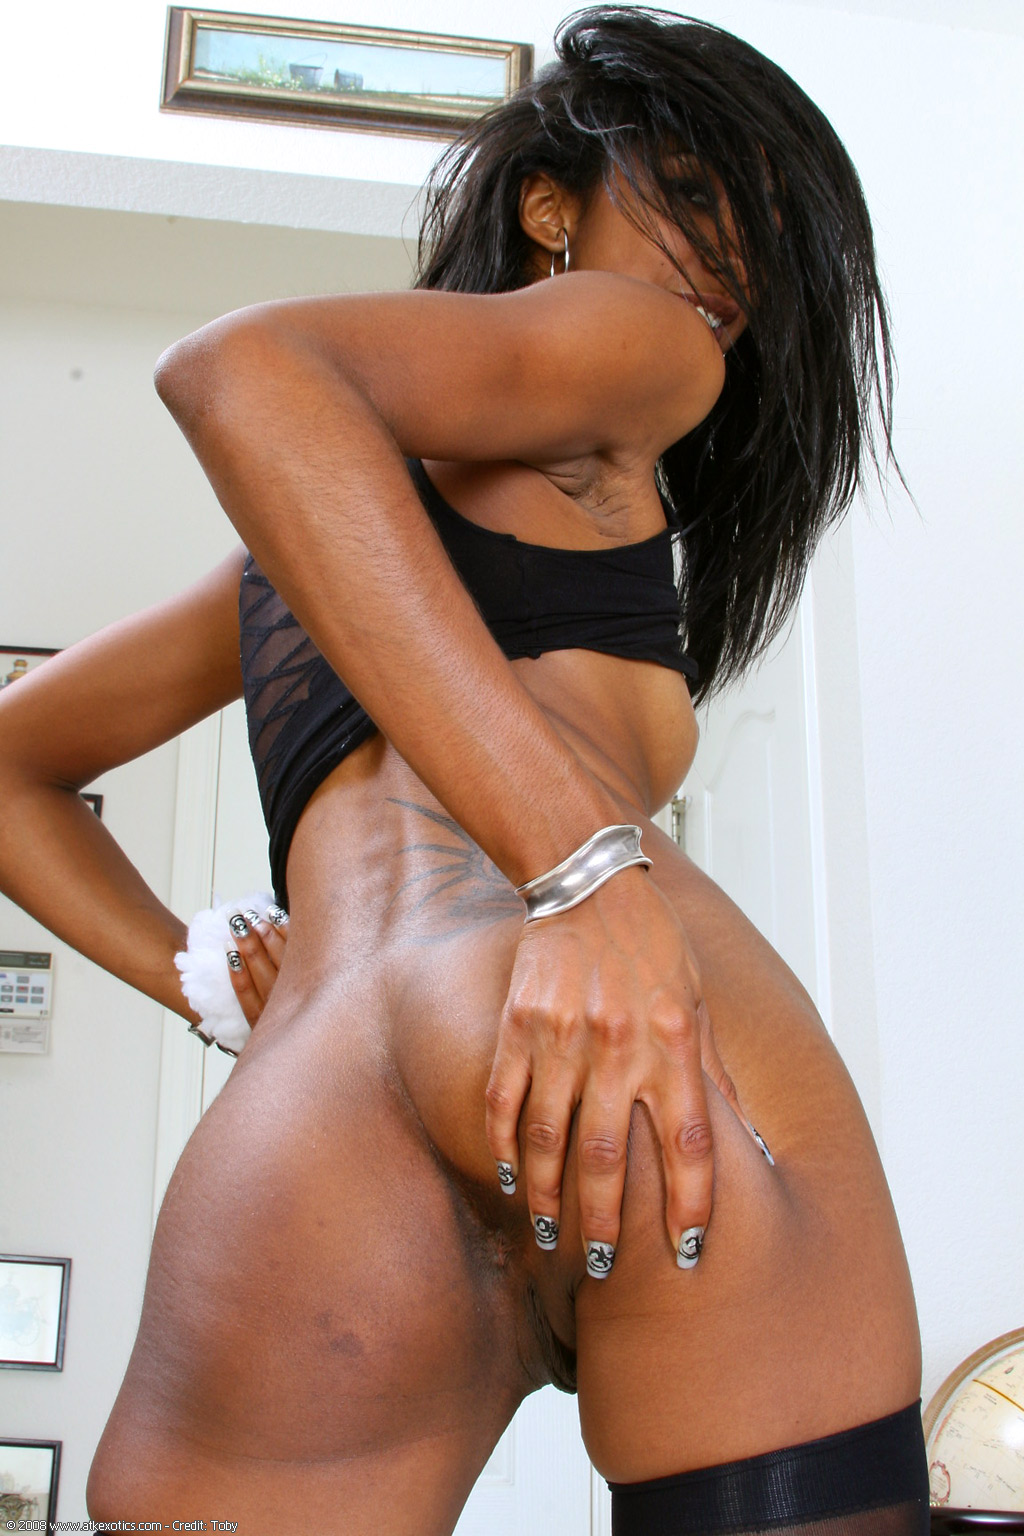 Ebony Hot Girls Pics